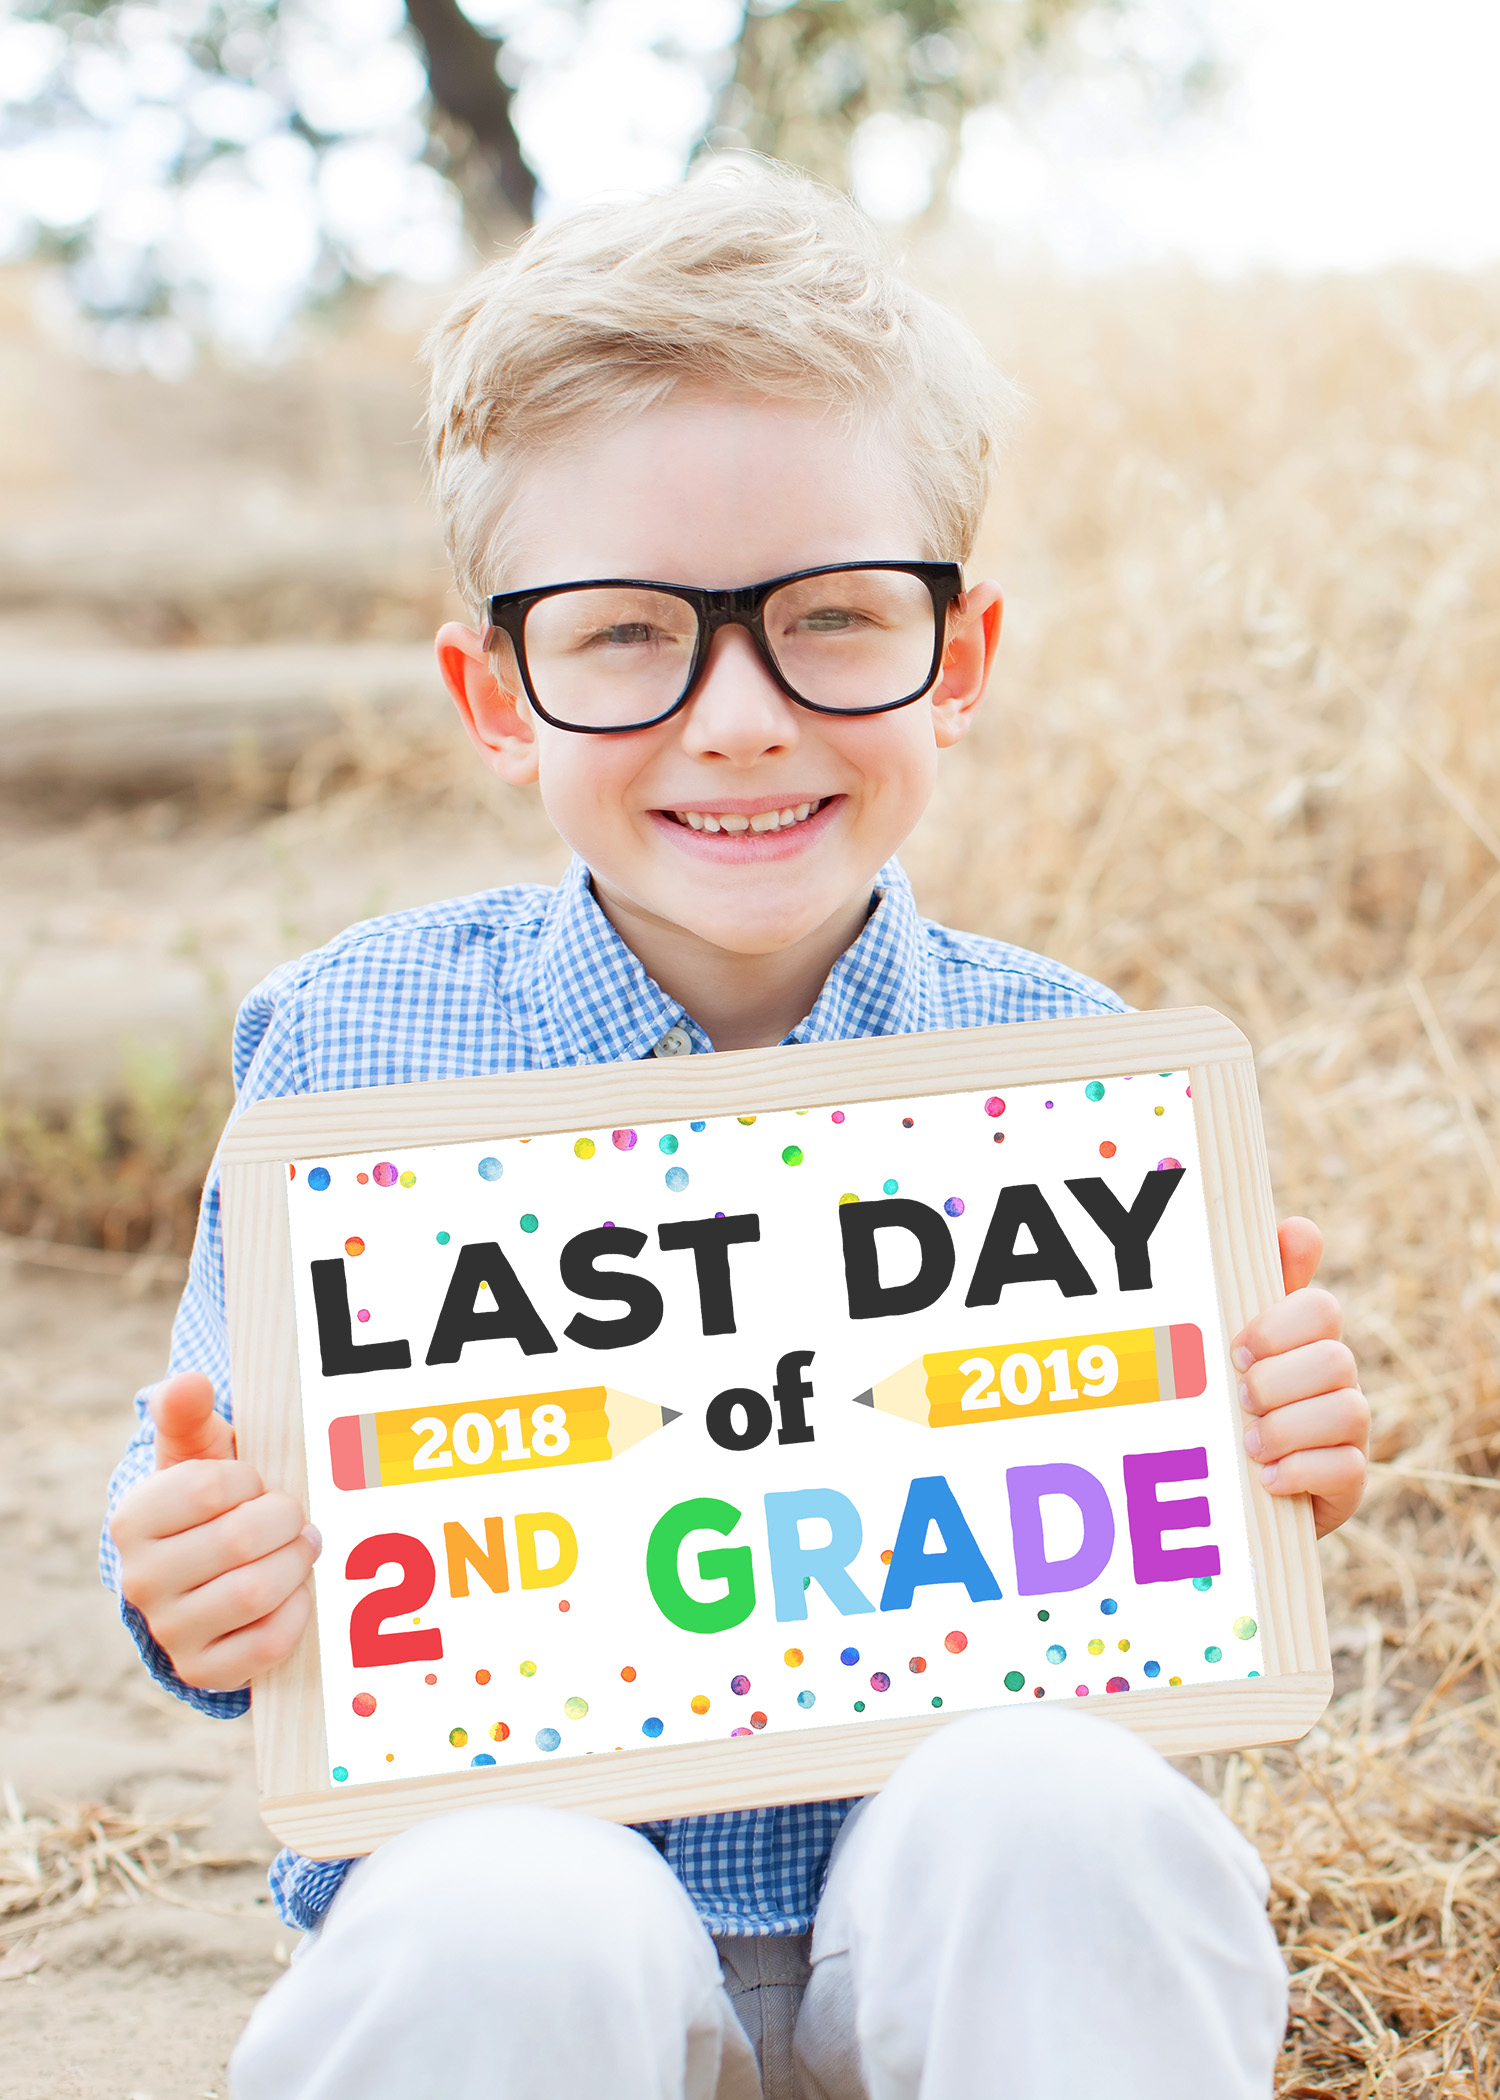 photograph about Last Day of School Printable named Final Working day of College or university Signs or symptoms - Free of charge Printable - Joy is